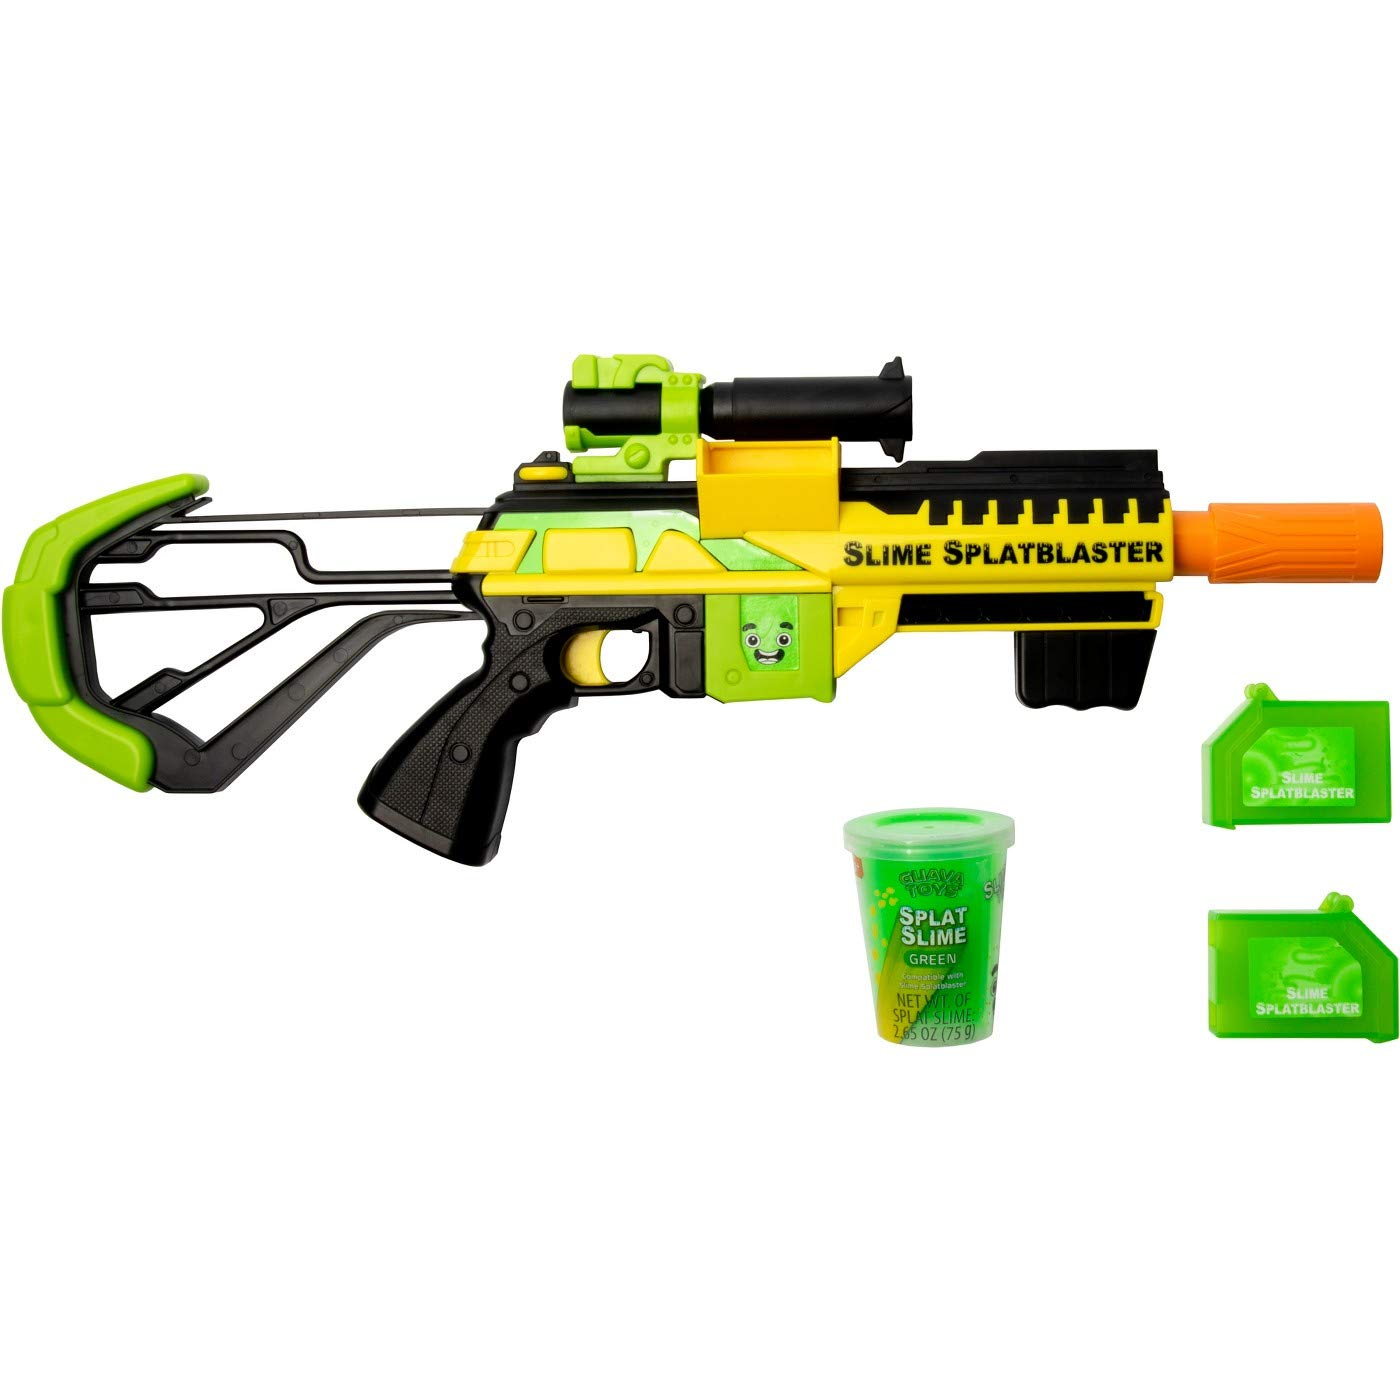 Guava Toys Slime Blaster | Includes 2 Specially Formulated Splatblaster Slime Cartridges